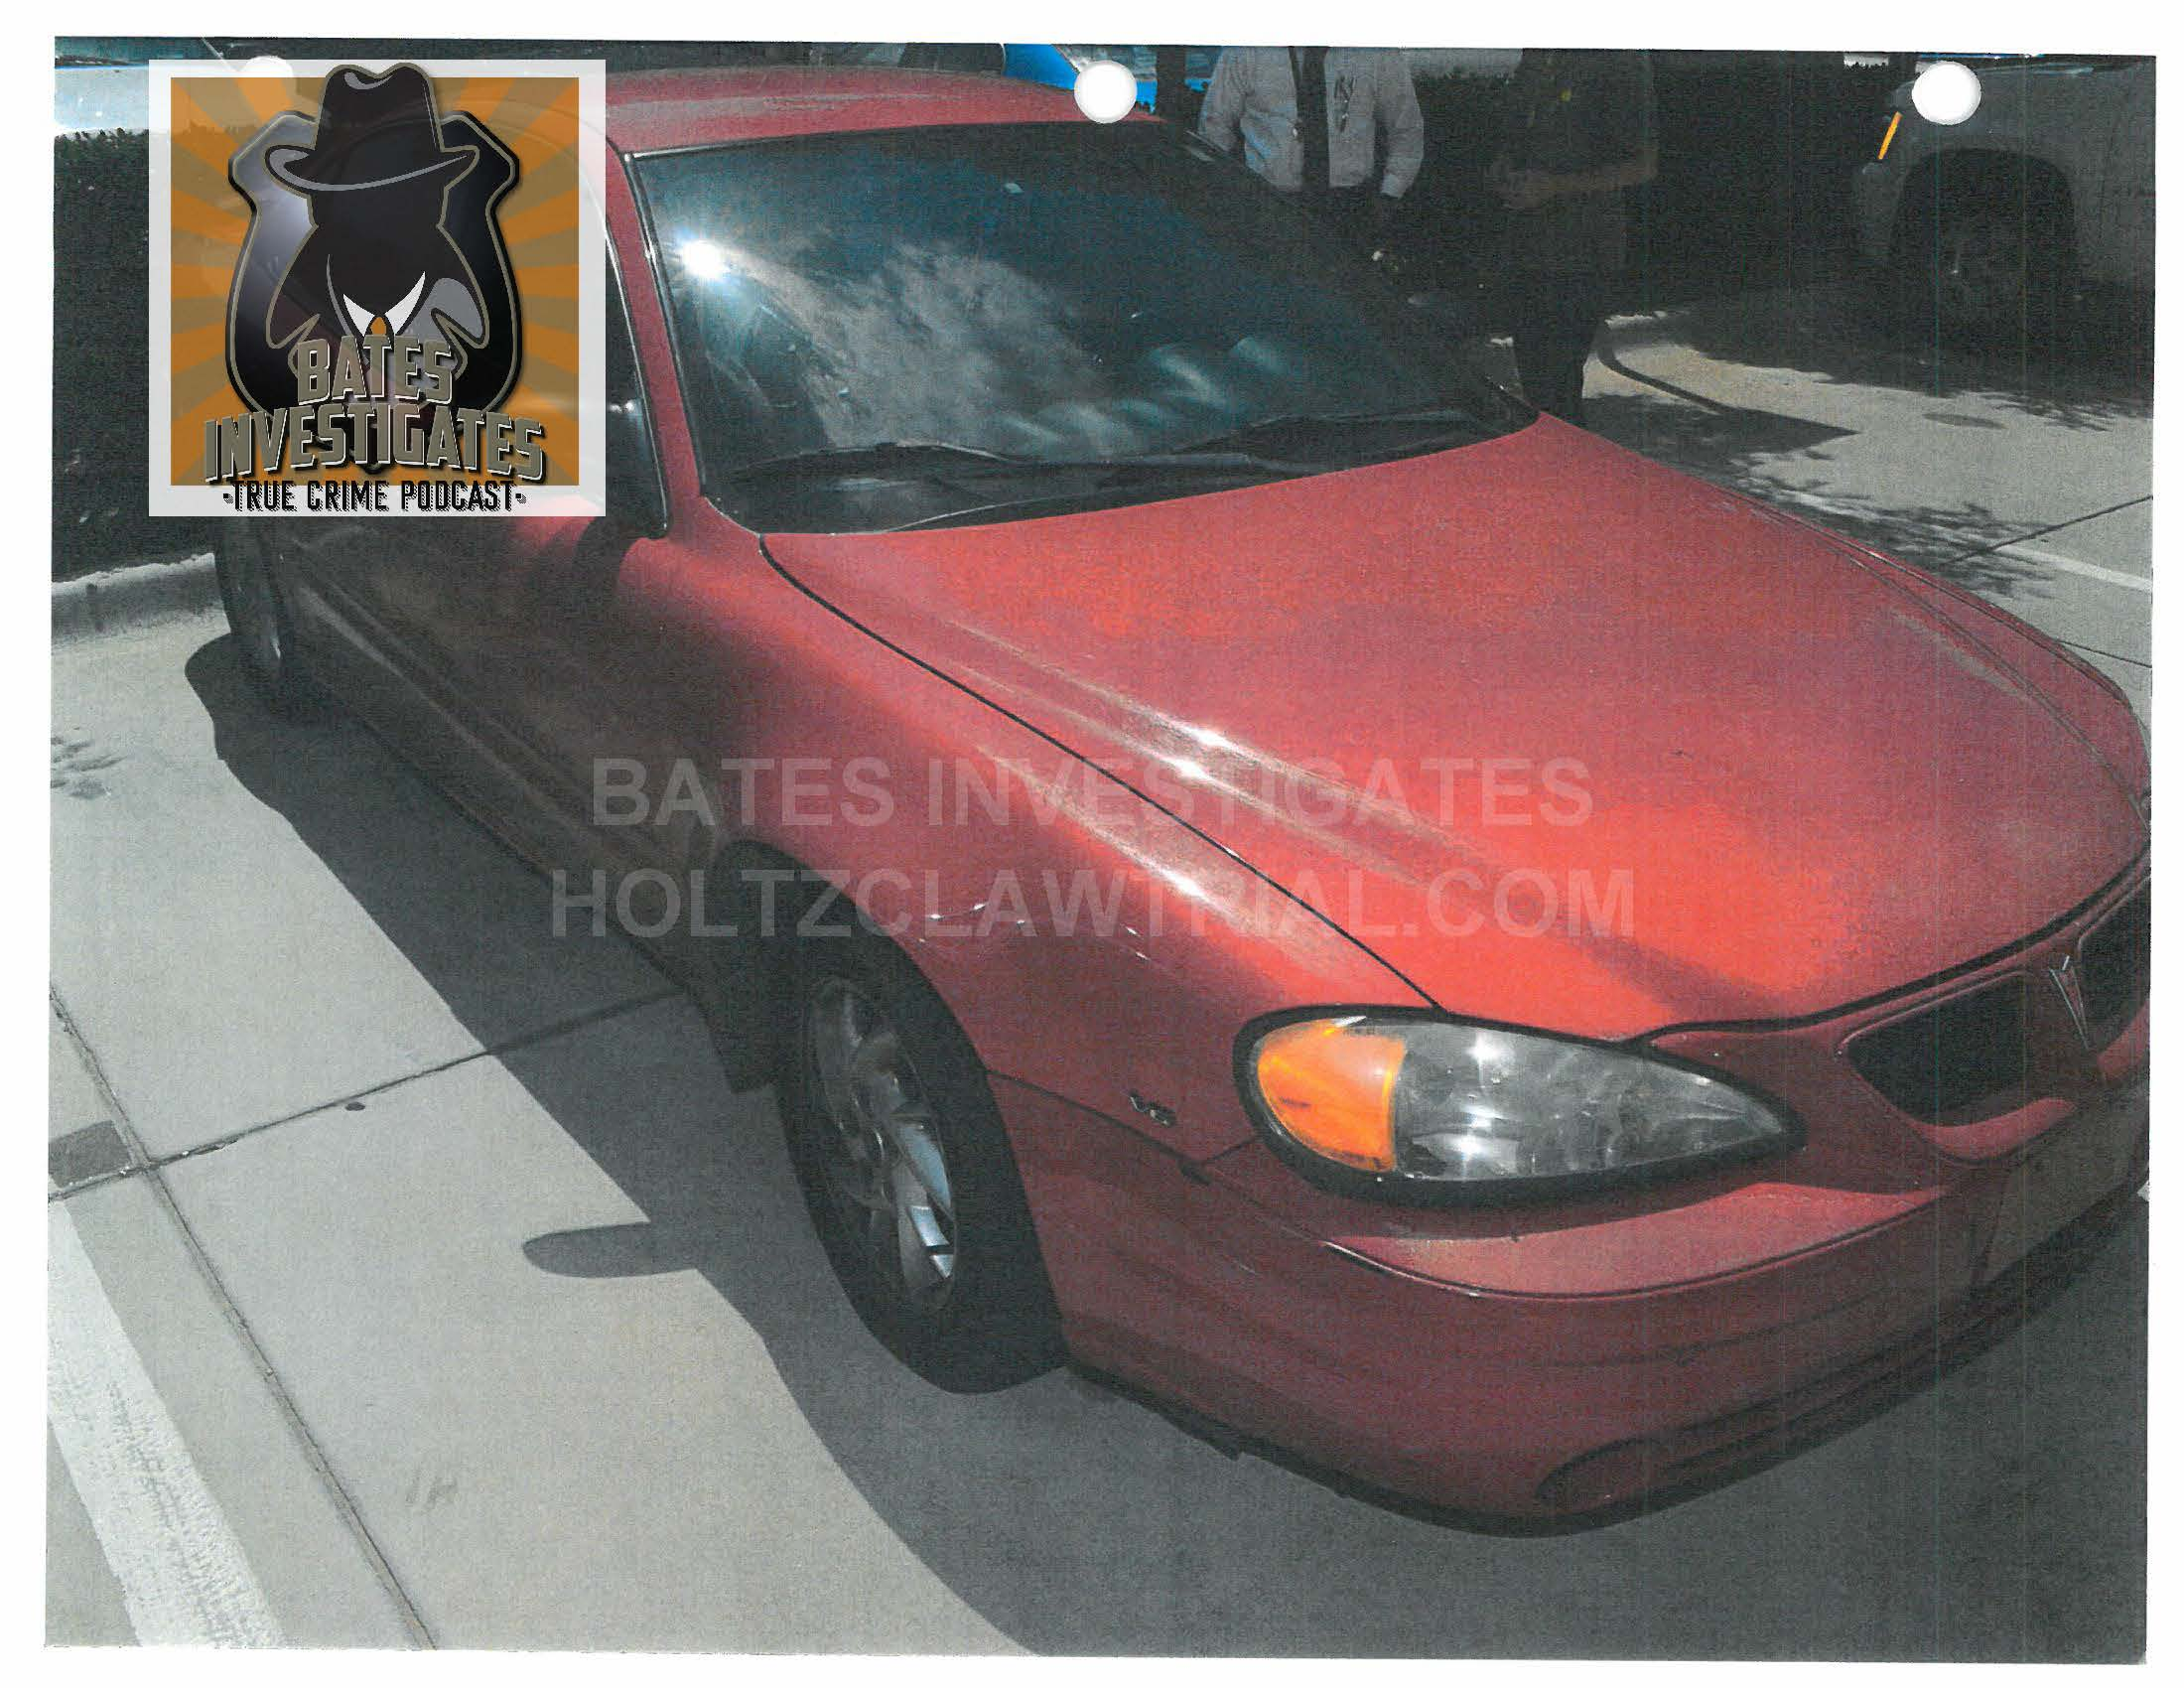 Holtzclaw Podcast Ep02 - Ligons Car - Watermarked_Page_13.jpg